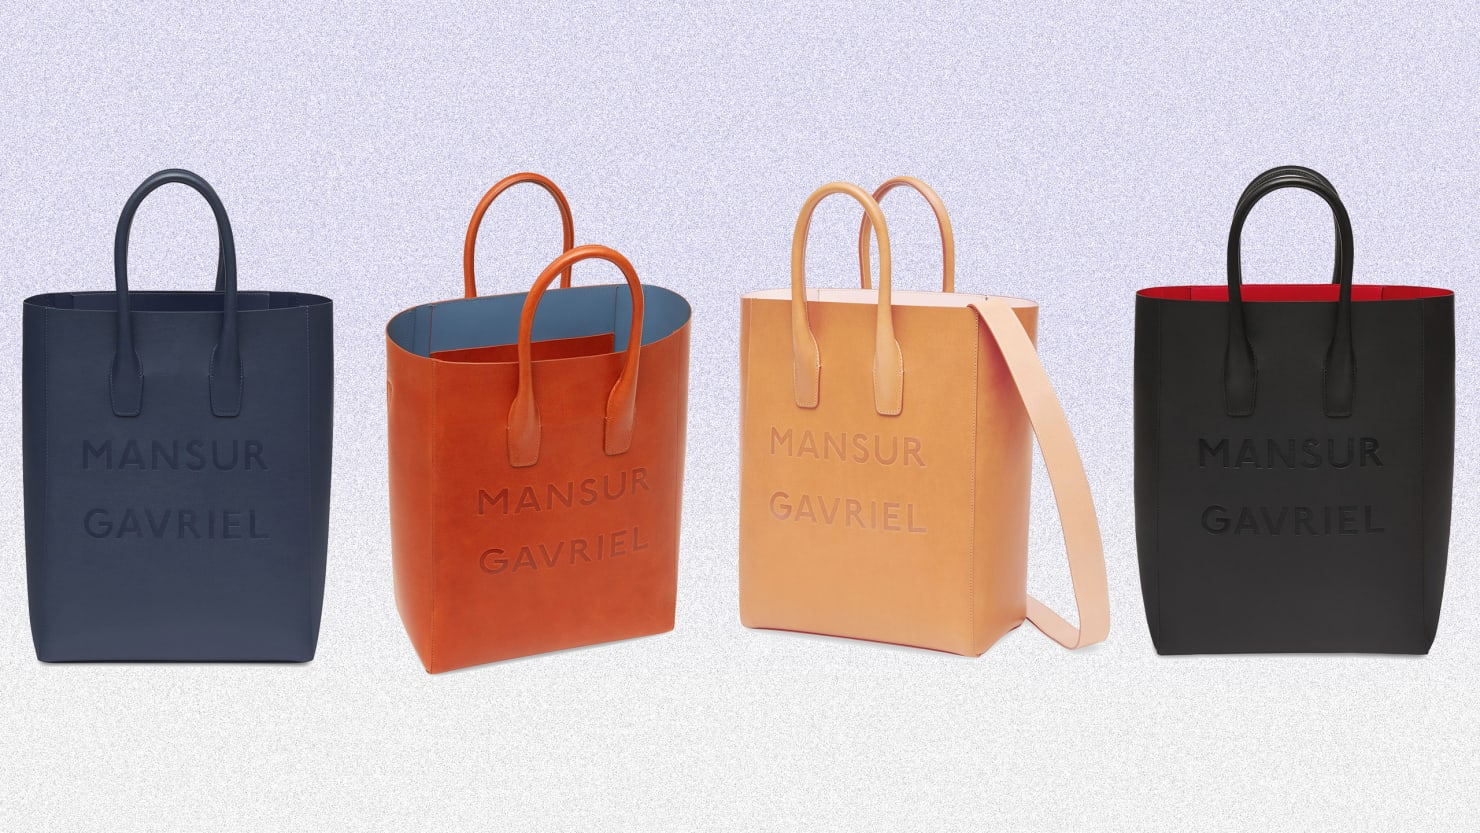 The New Mansur Gavriel Logo North South Tote Is an Elevated Version Of Your Favorite Tote Bag